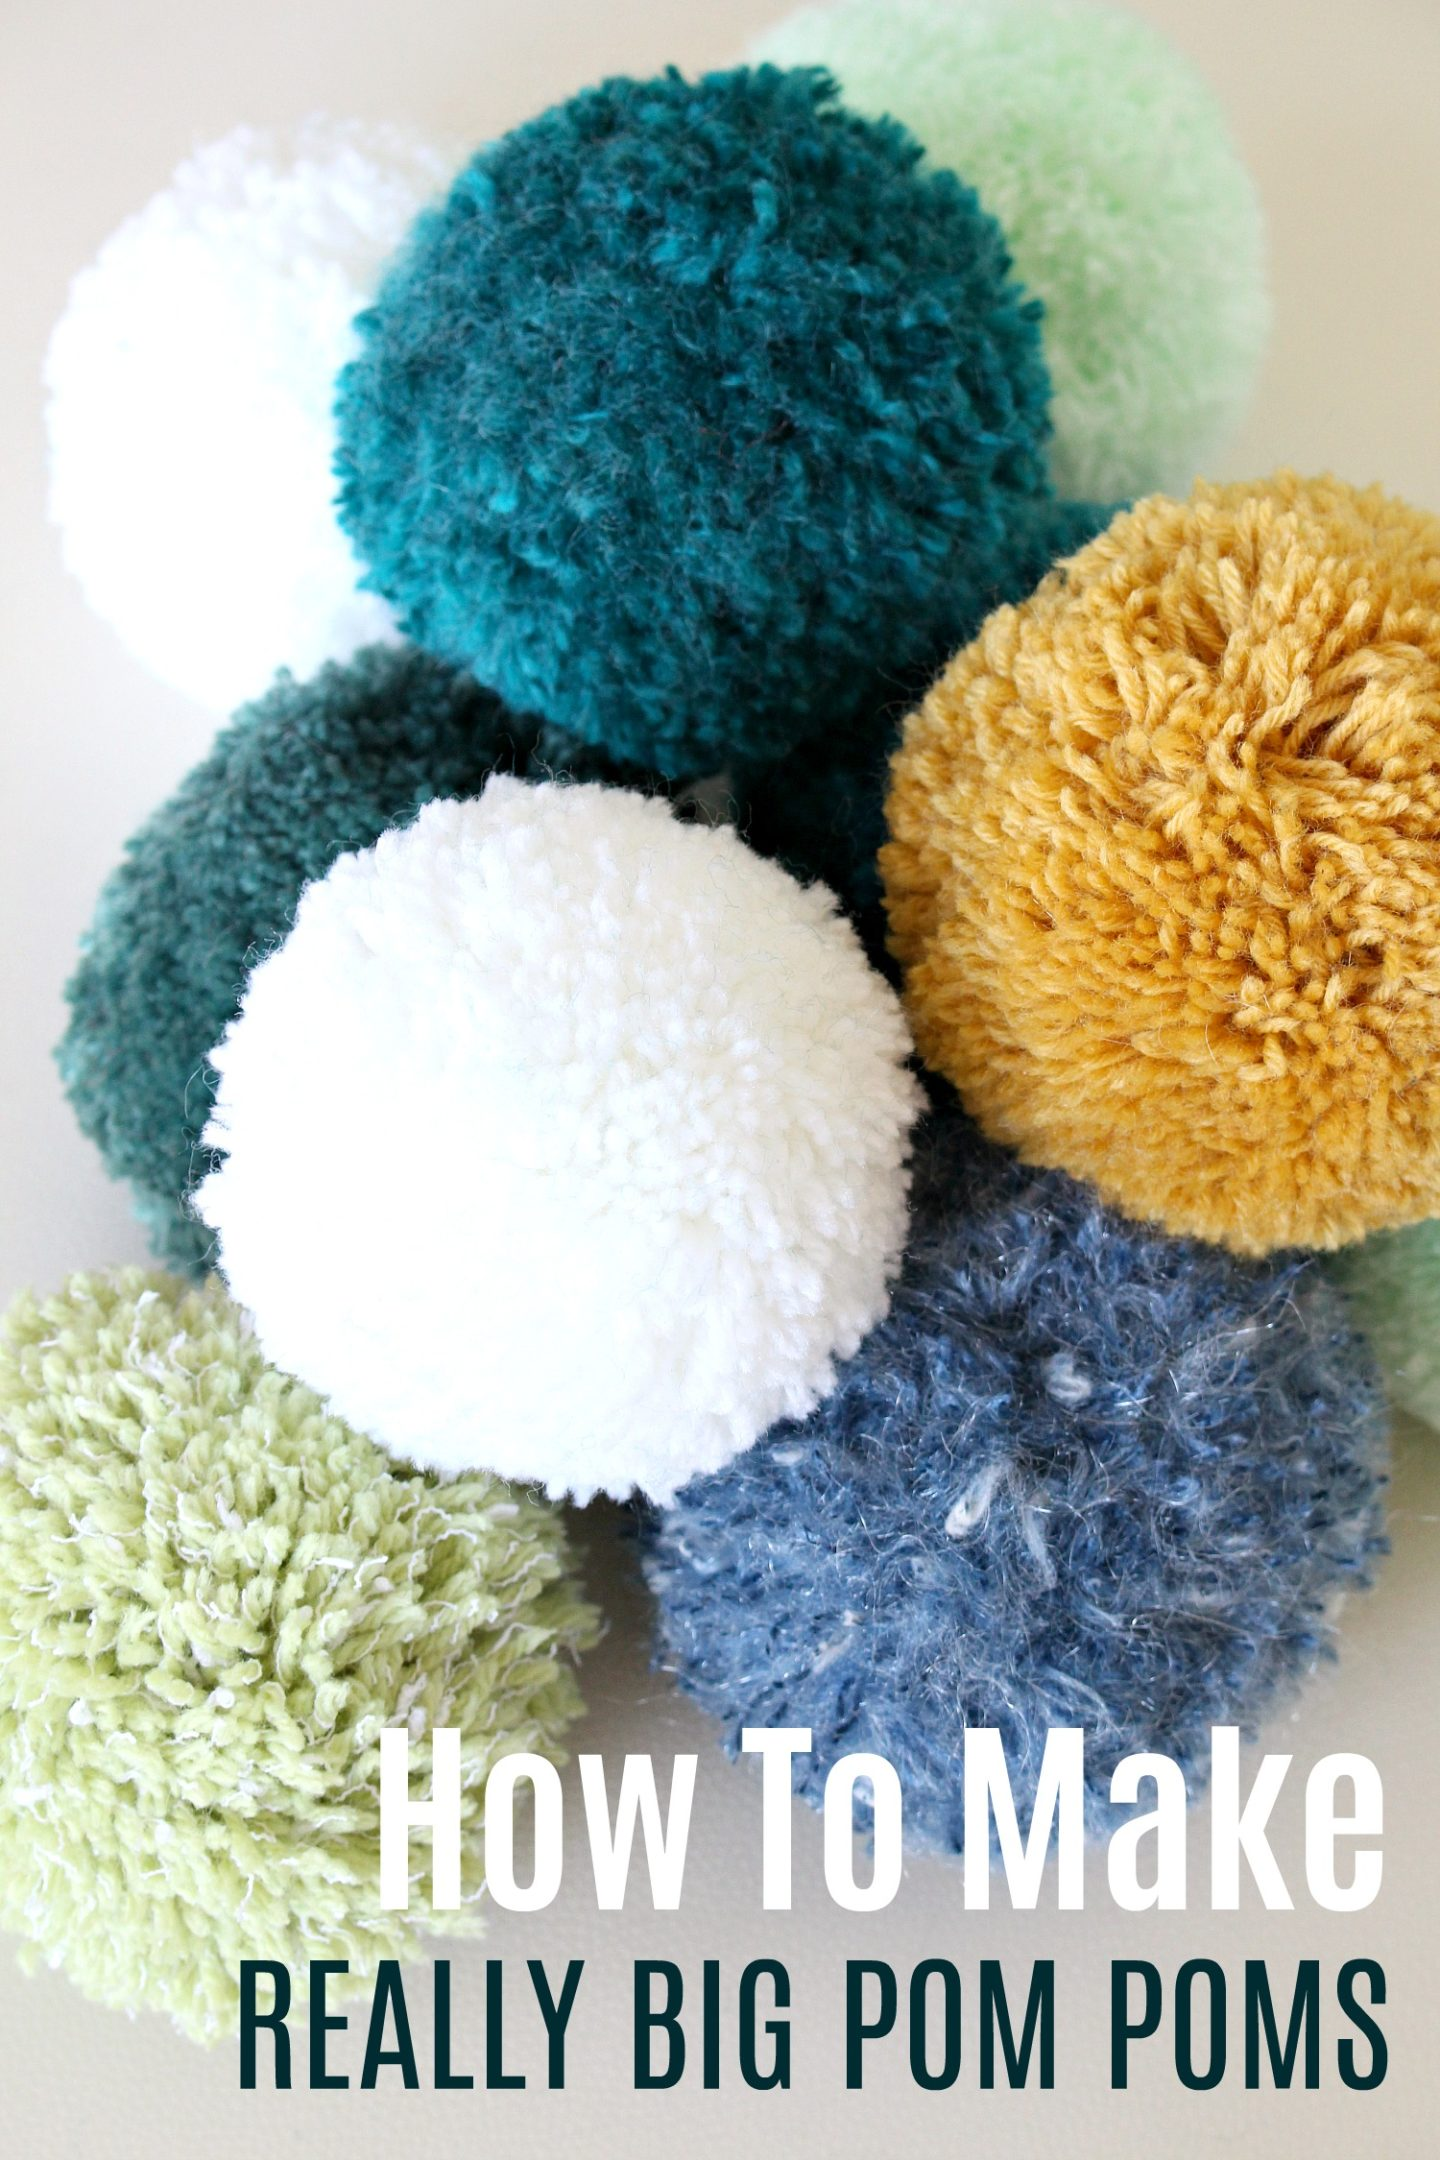 DIY Pom Pom Tutorial - How to Make Really Big Pom Poms